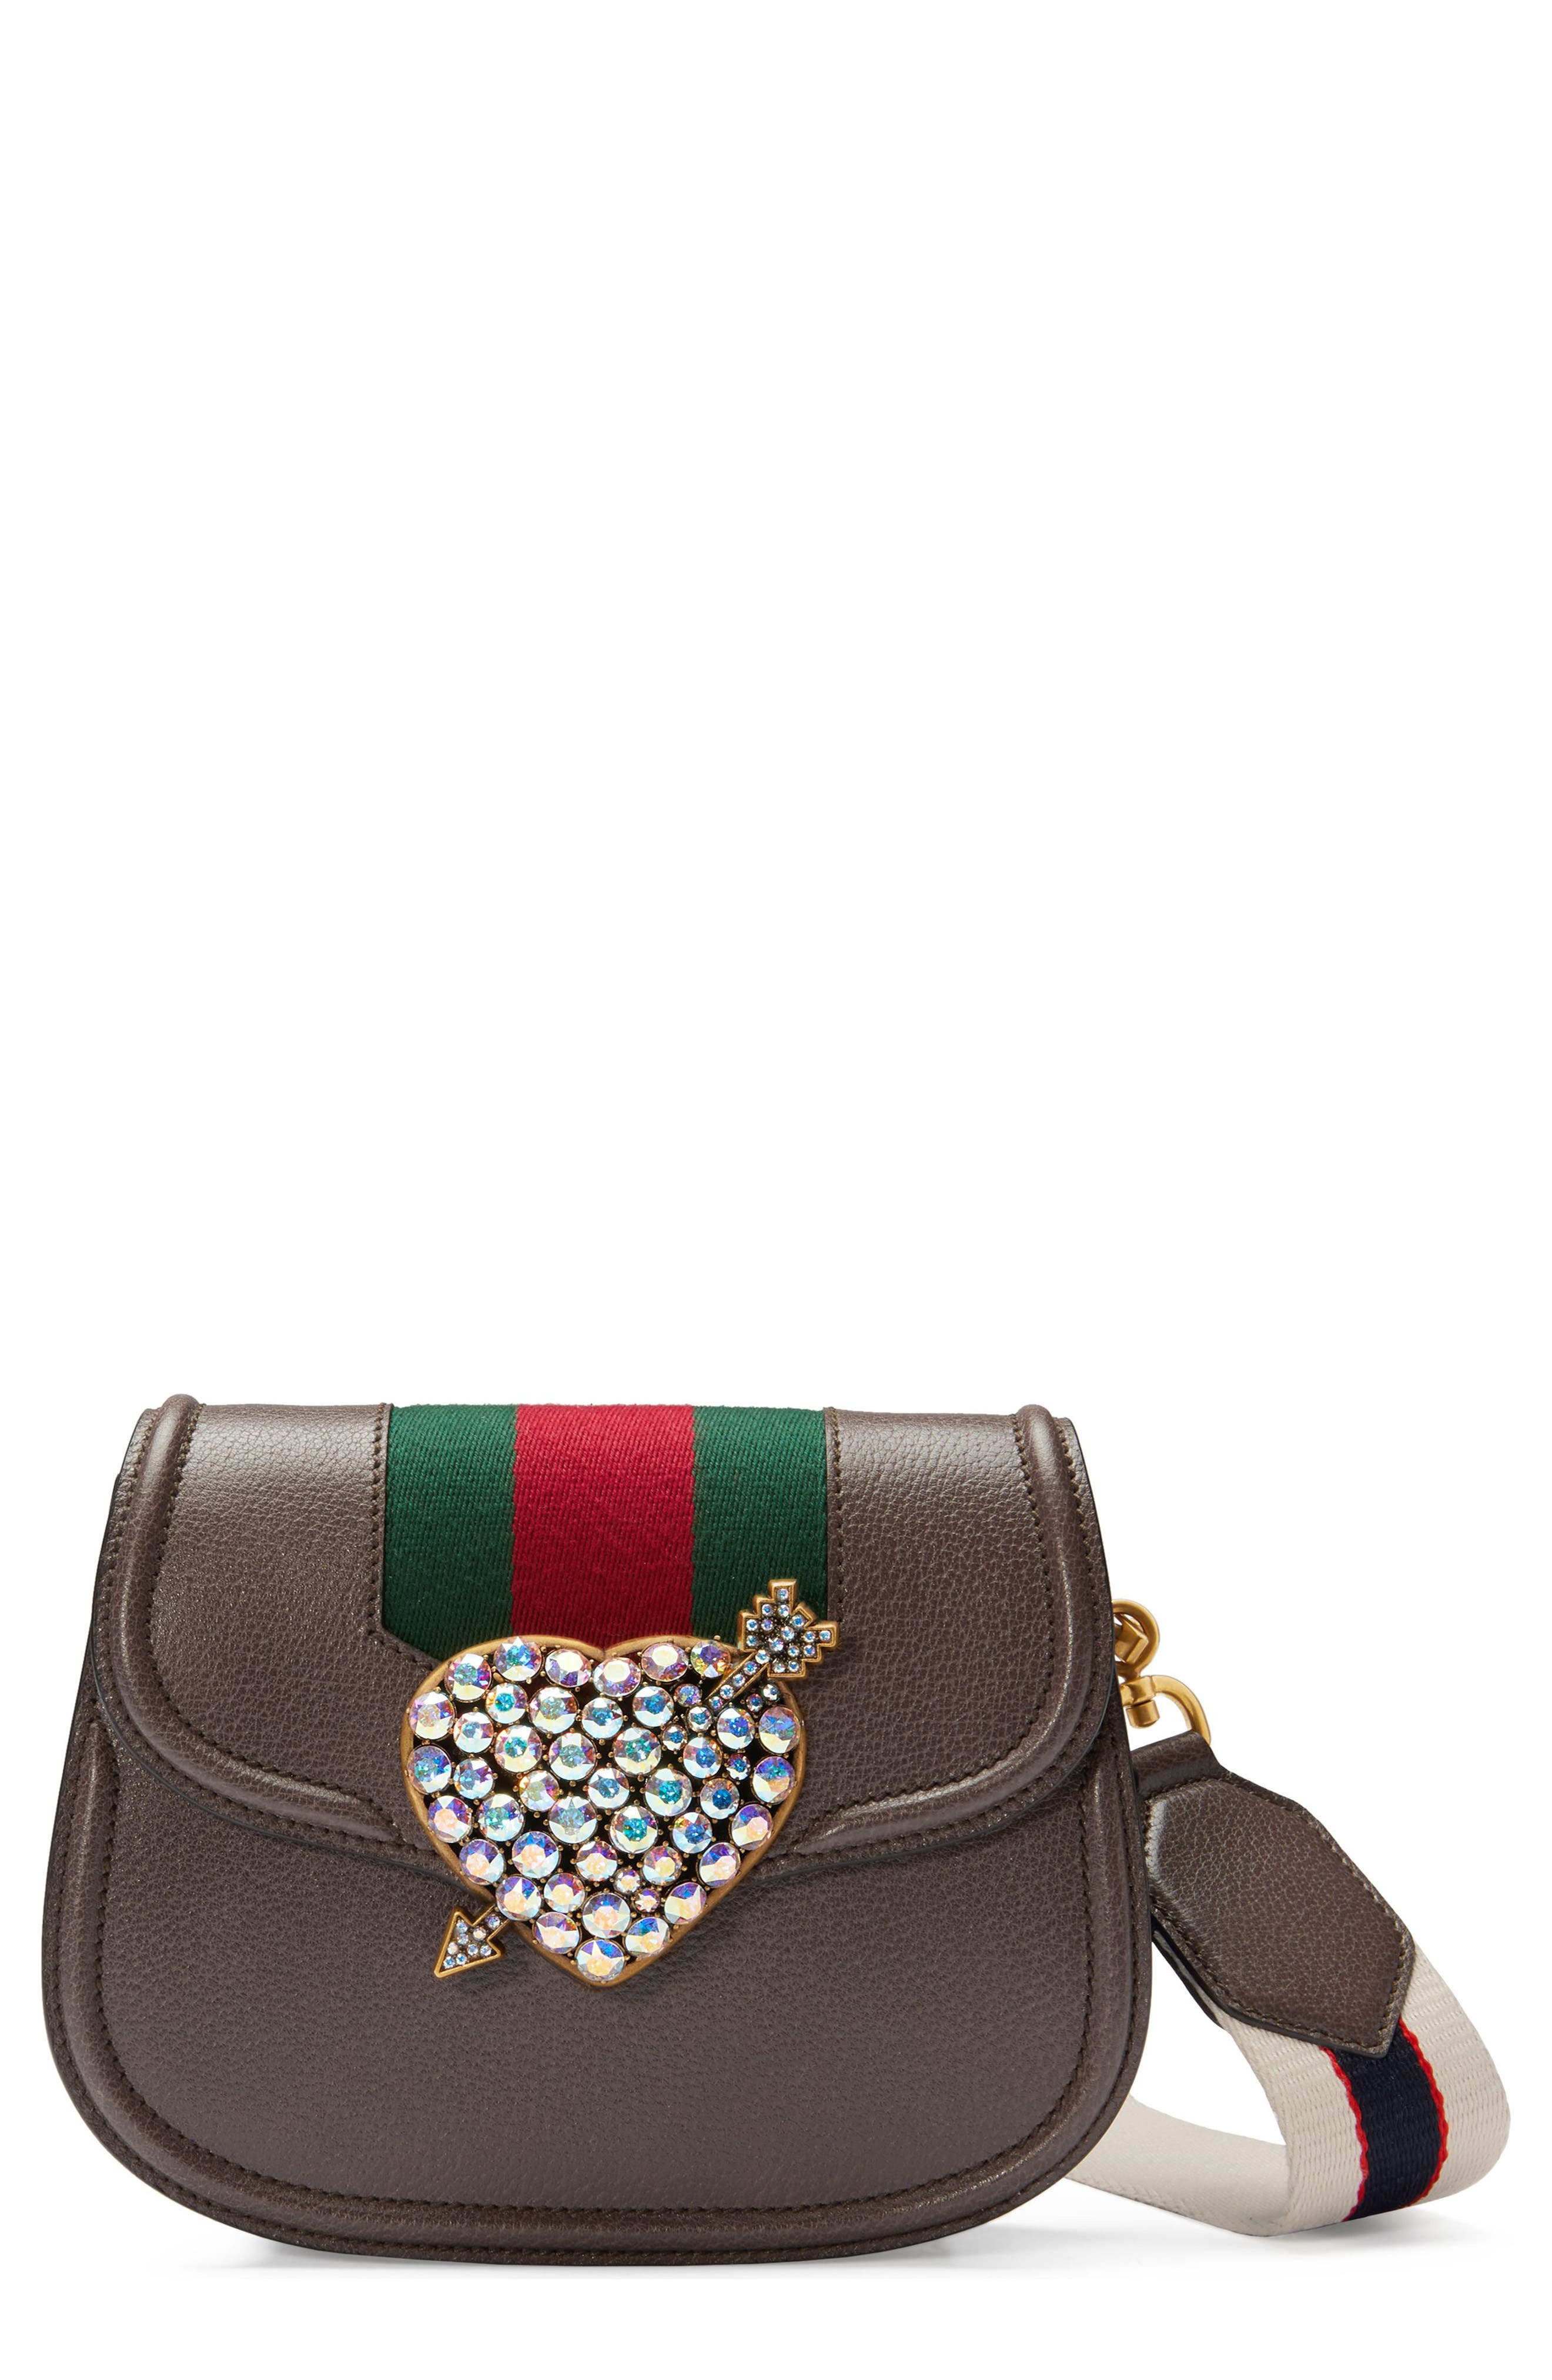 Small Linea Totem Crystal Heart Shoulder Bag,                             Main thumbnail 1, color,                             New Acero / Vert Red Vert